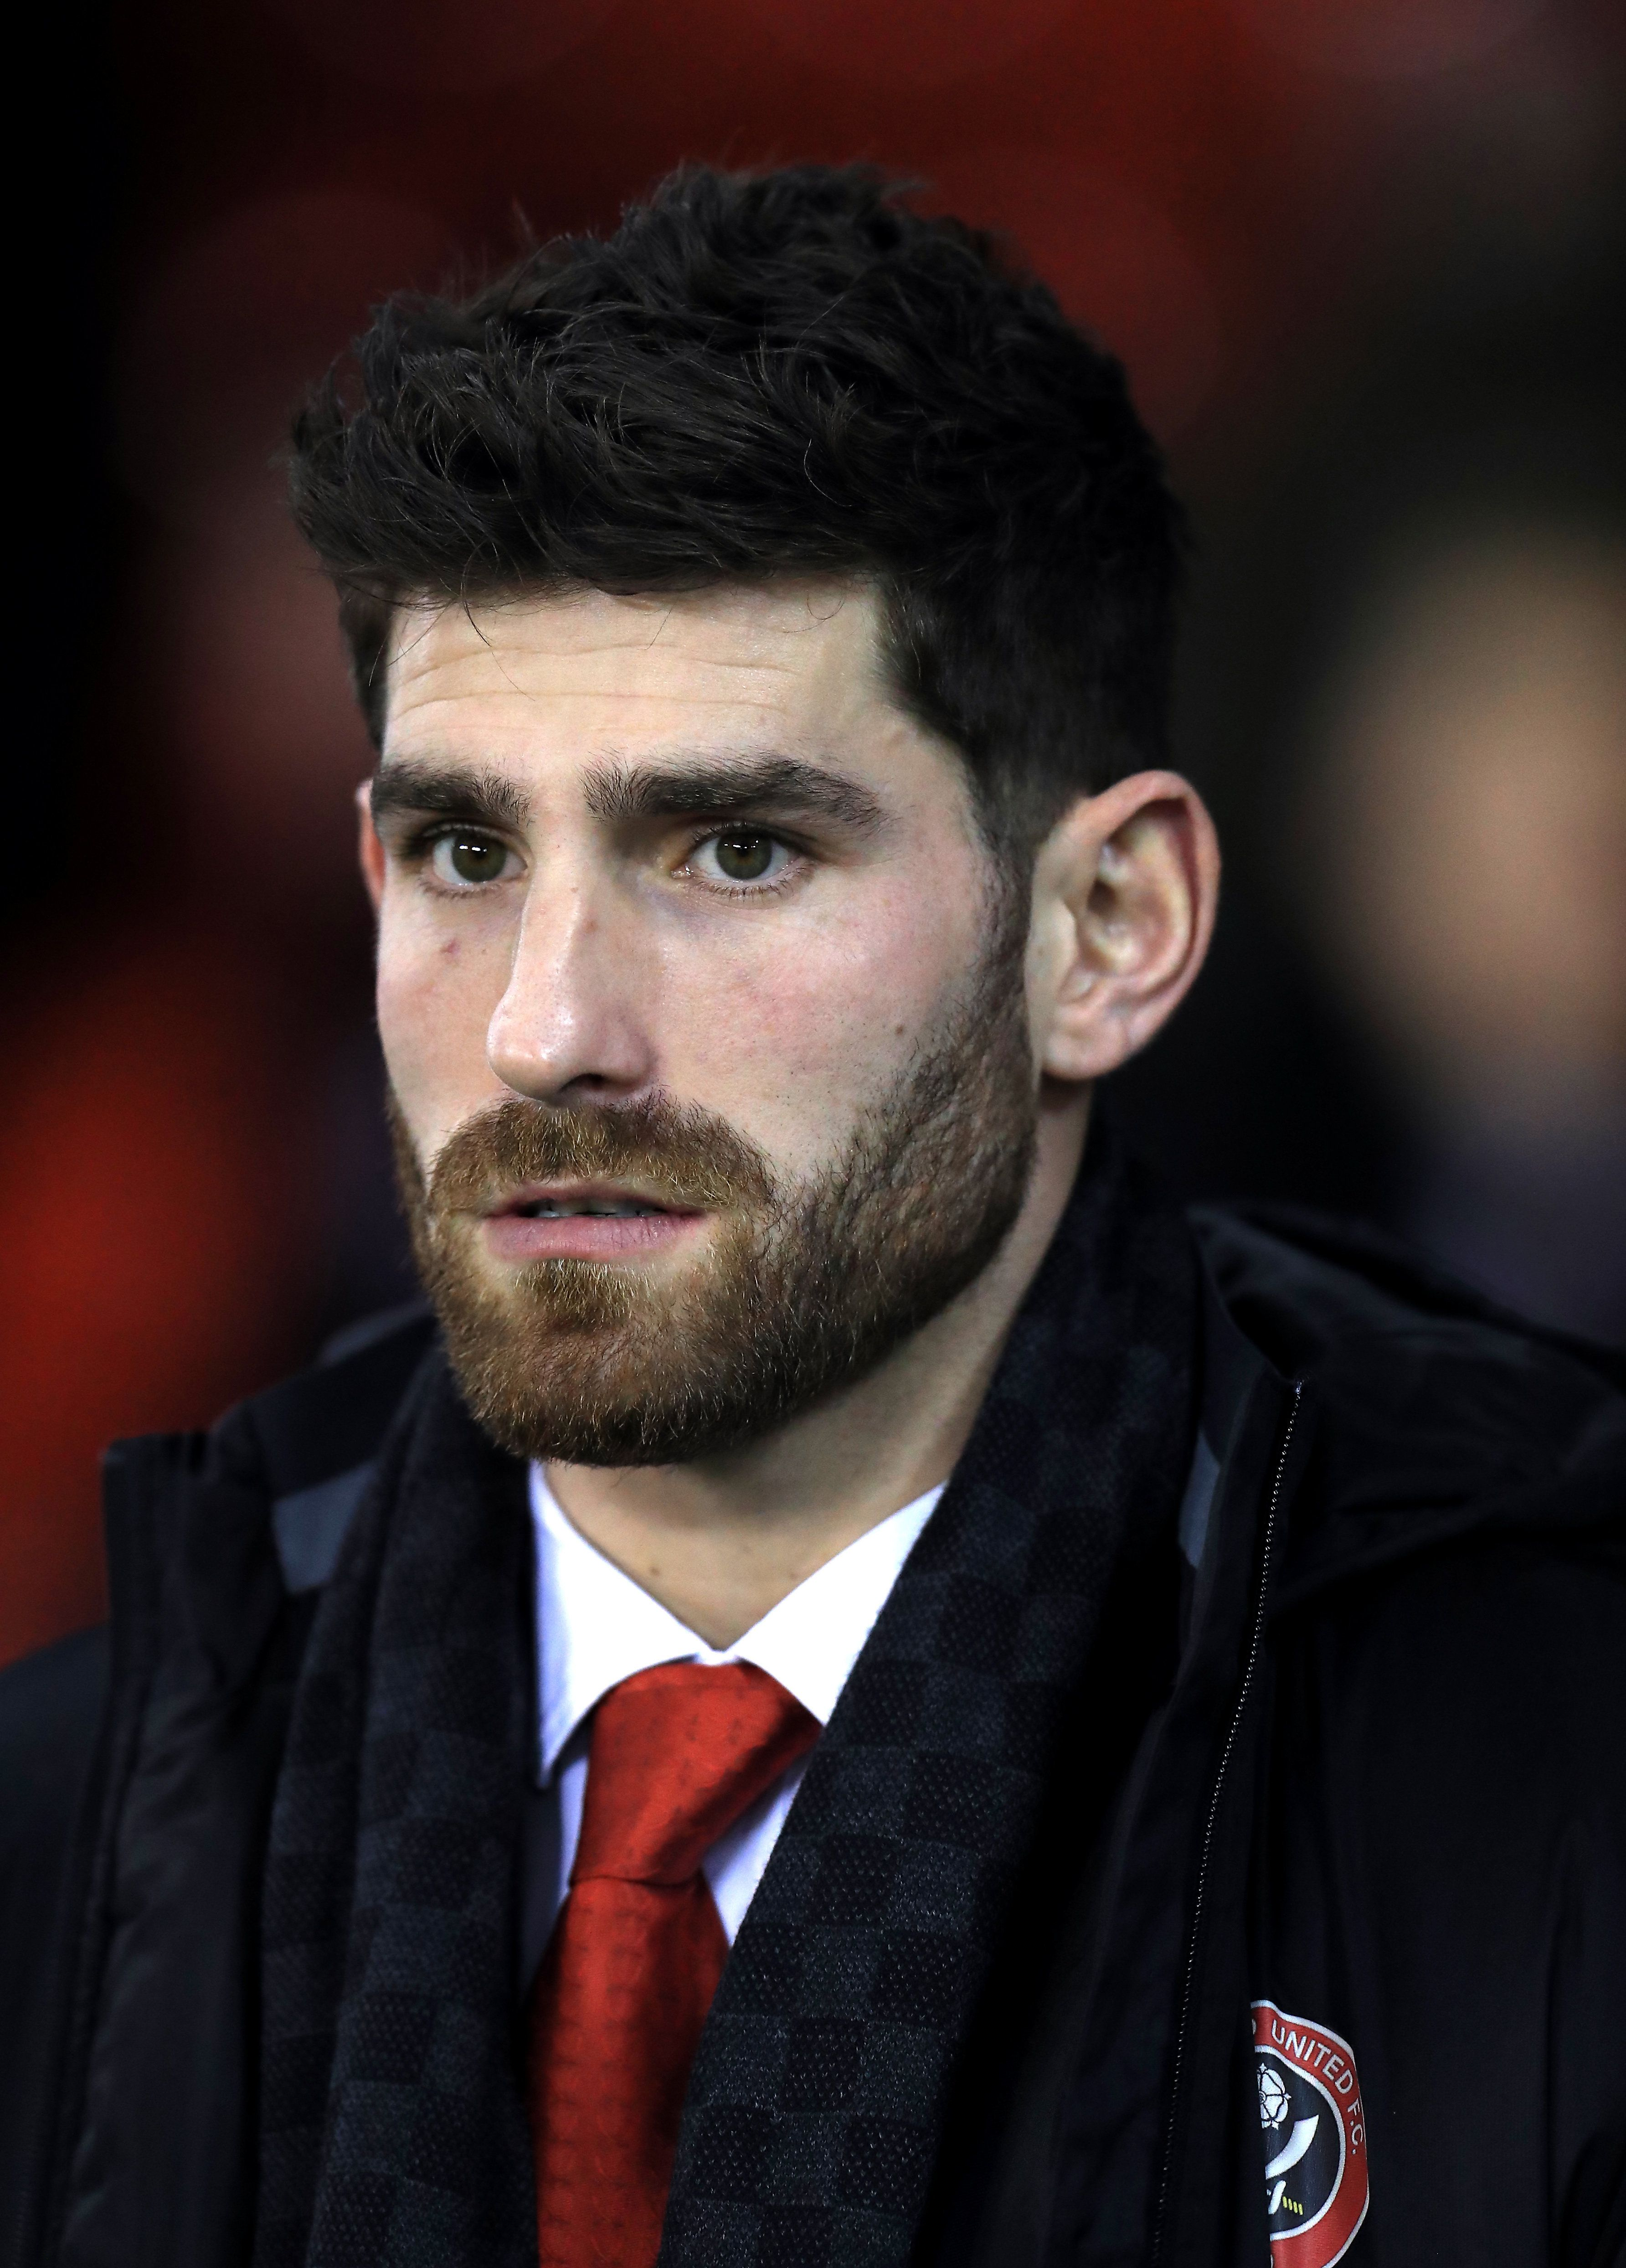 Ched Evans To Sue Lawyers Over 'Lost Earnings' After Overturned Rape